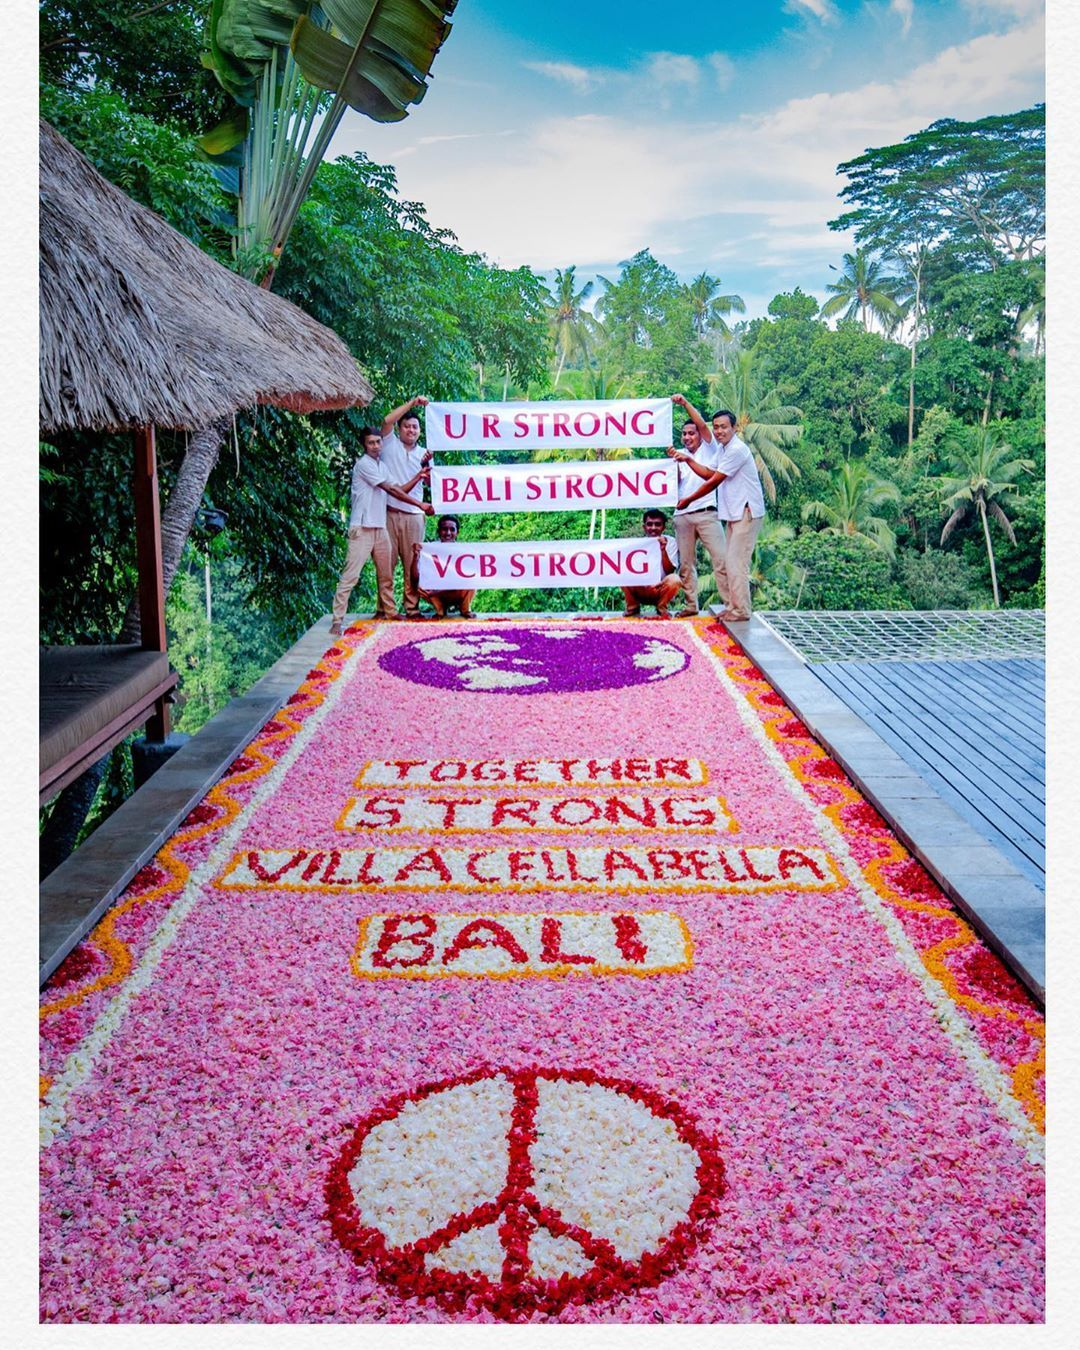 Villa Cella Bella Ubud Bali On Instagram Together Strong We Shall Overcome We Shall Persevere We Shall Triumph Alone Toget Ubud Bali Instagram